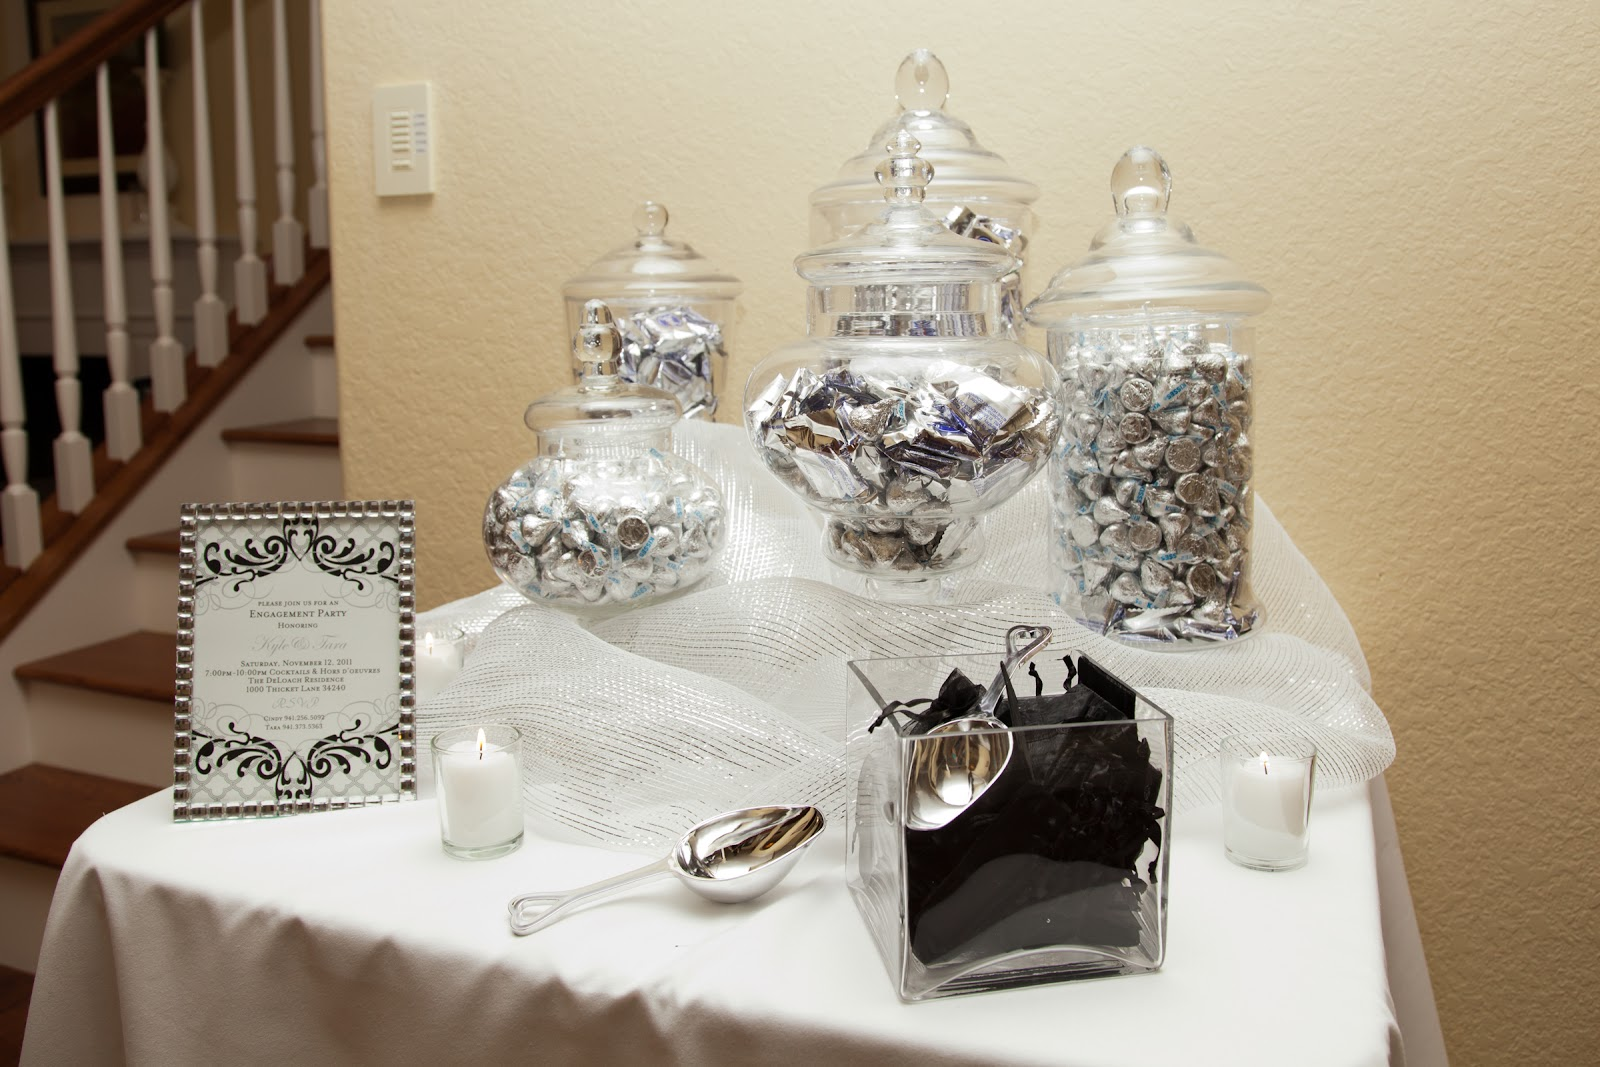 The Sweet Little Southern Charm by Tara Miller: Our Engagement Party